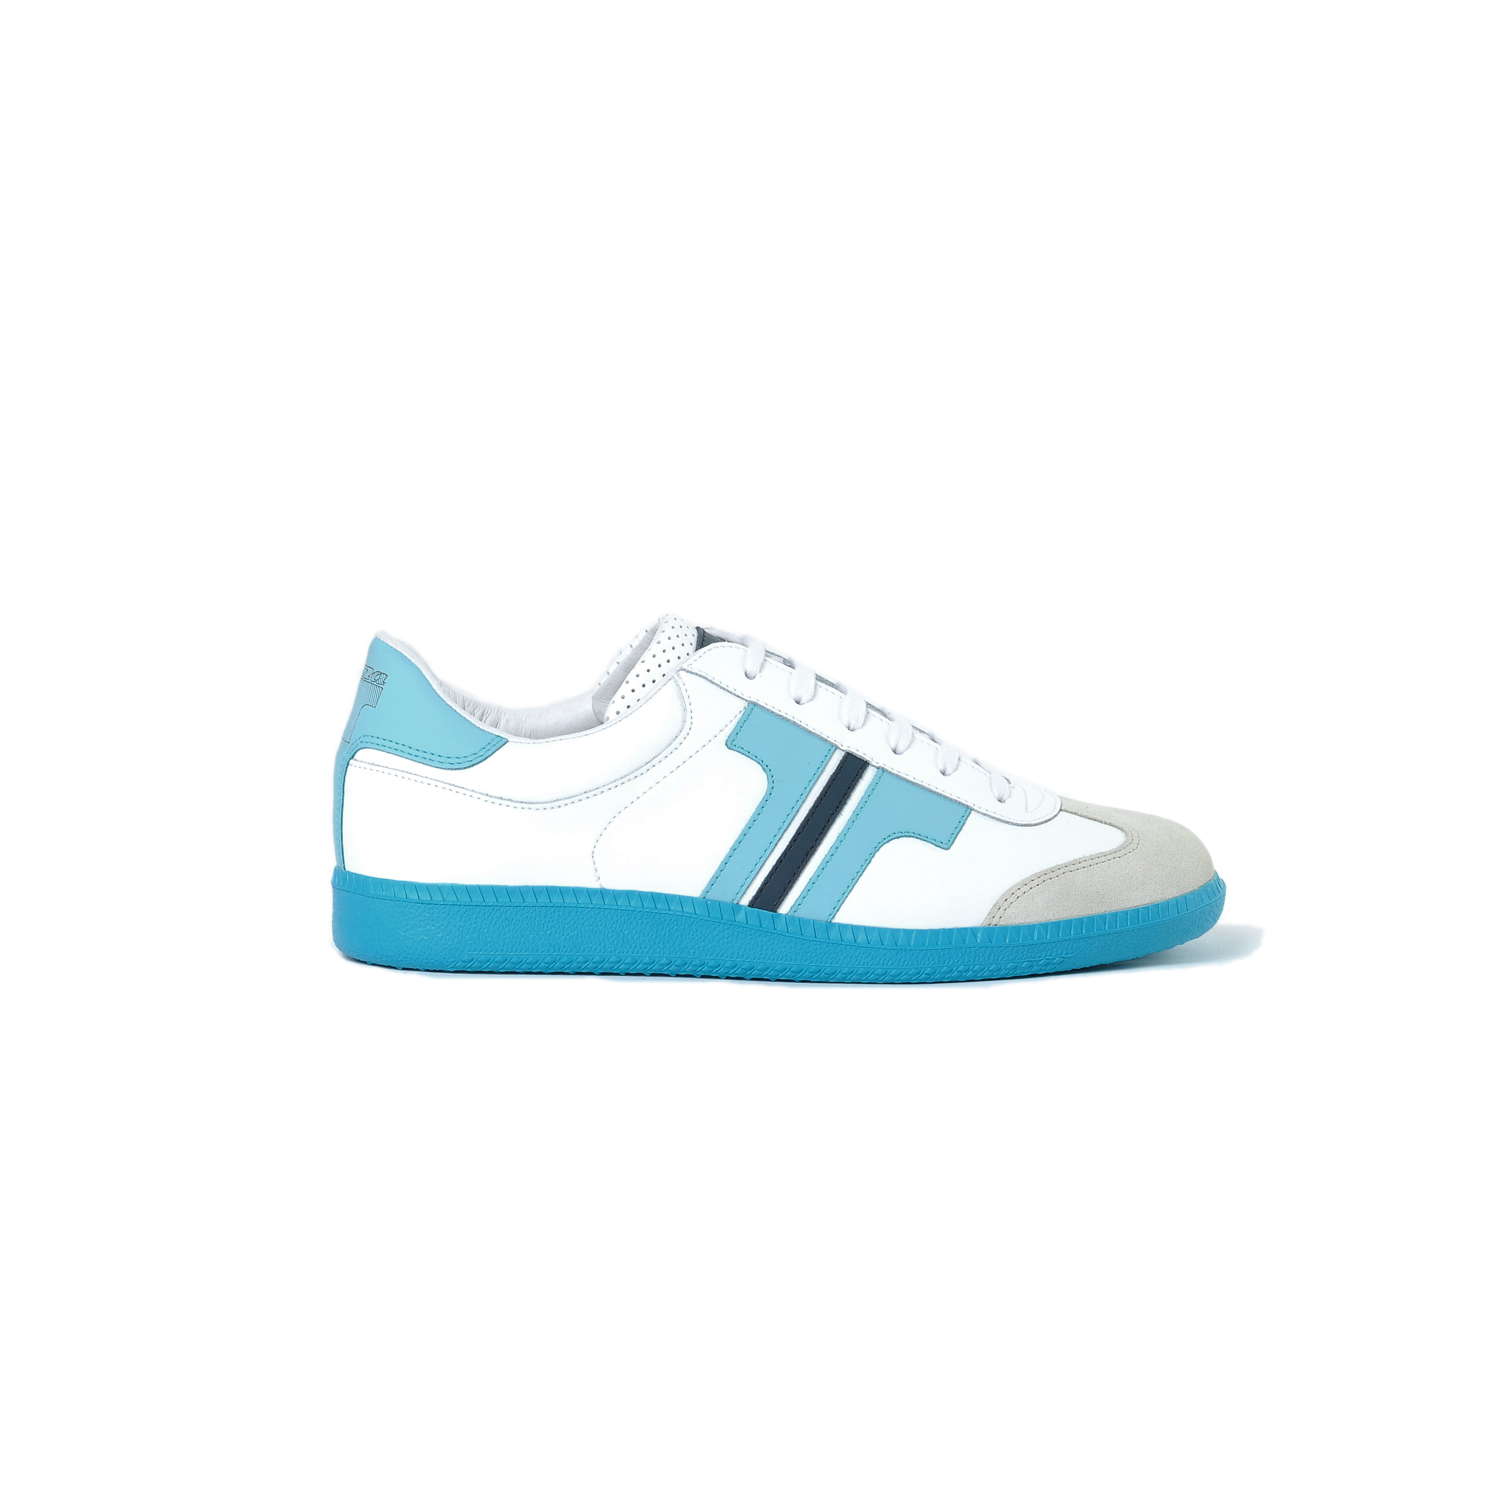 Tisza shoes - Compakt - White-lightblue-navy